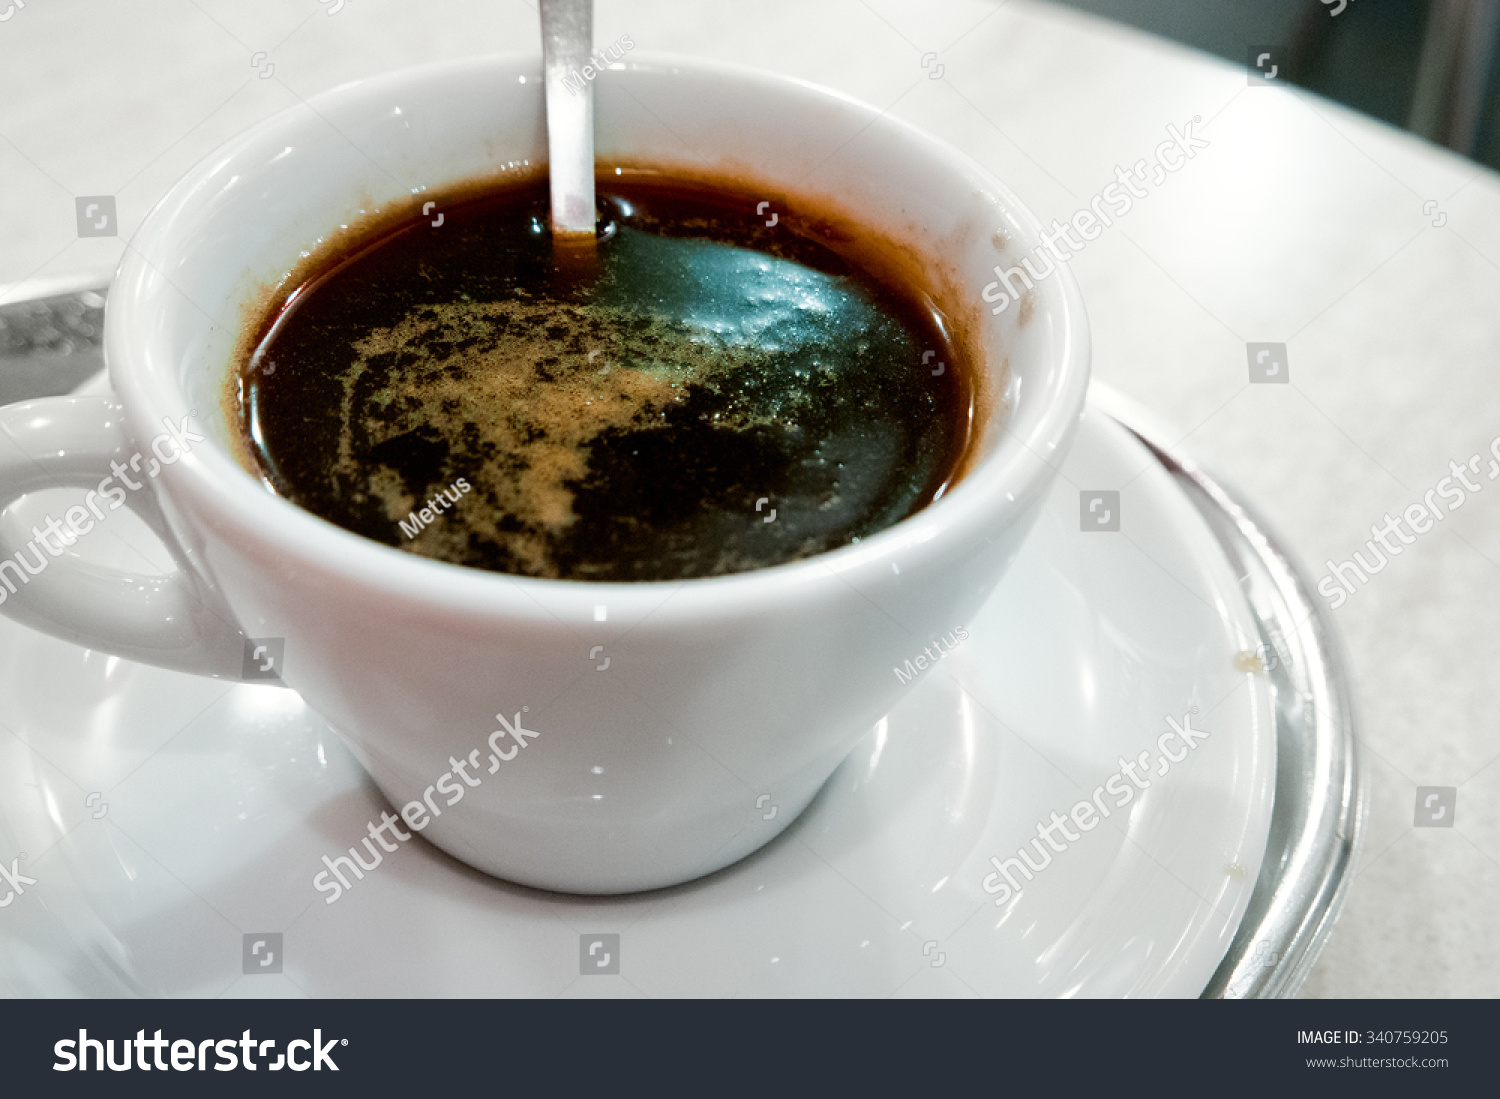 stock-photo-cup-of-black-coffee-on-the-t